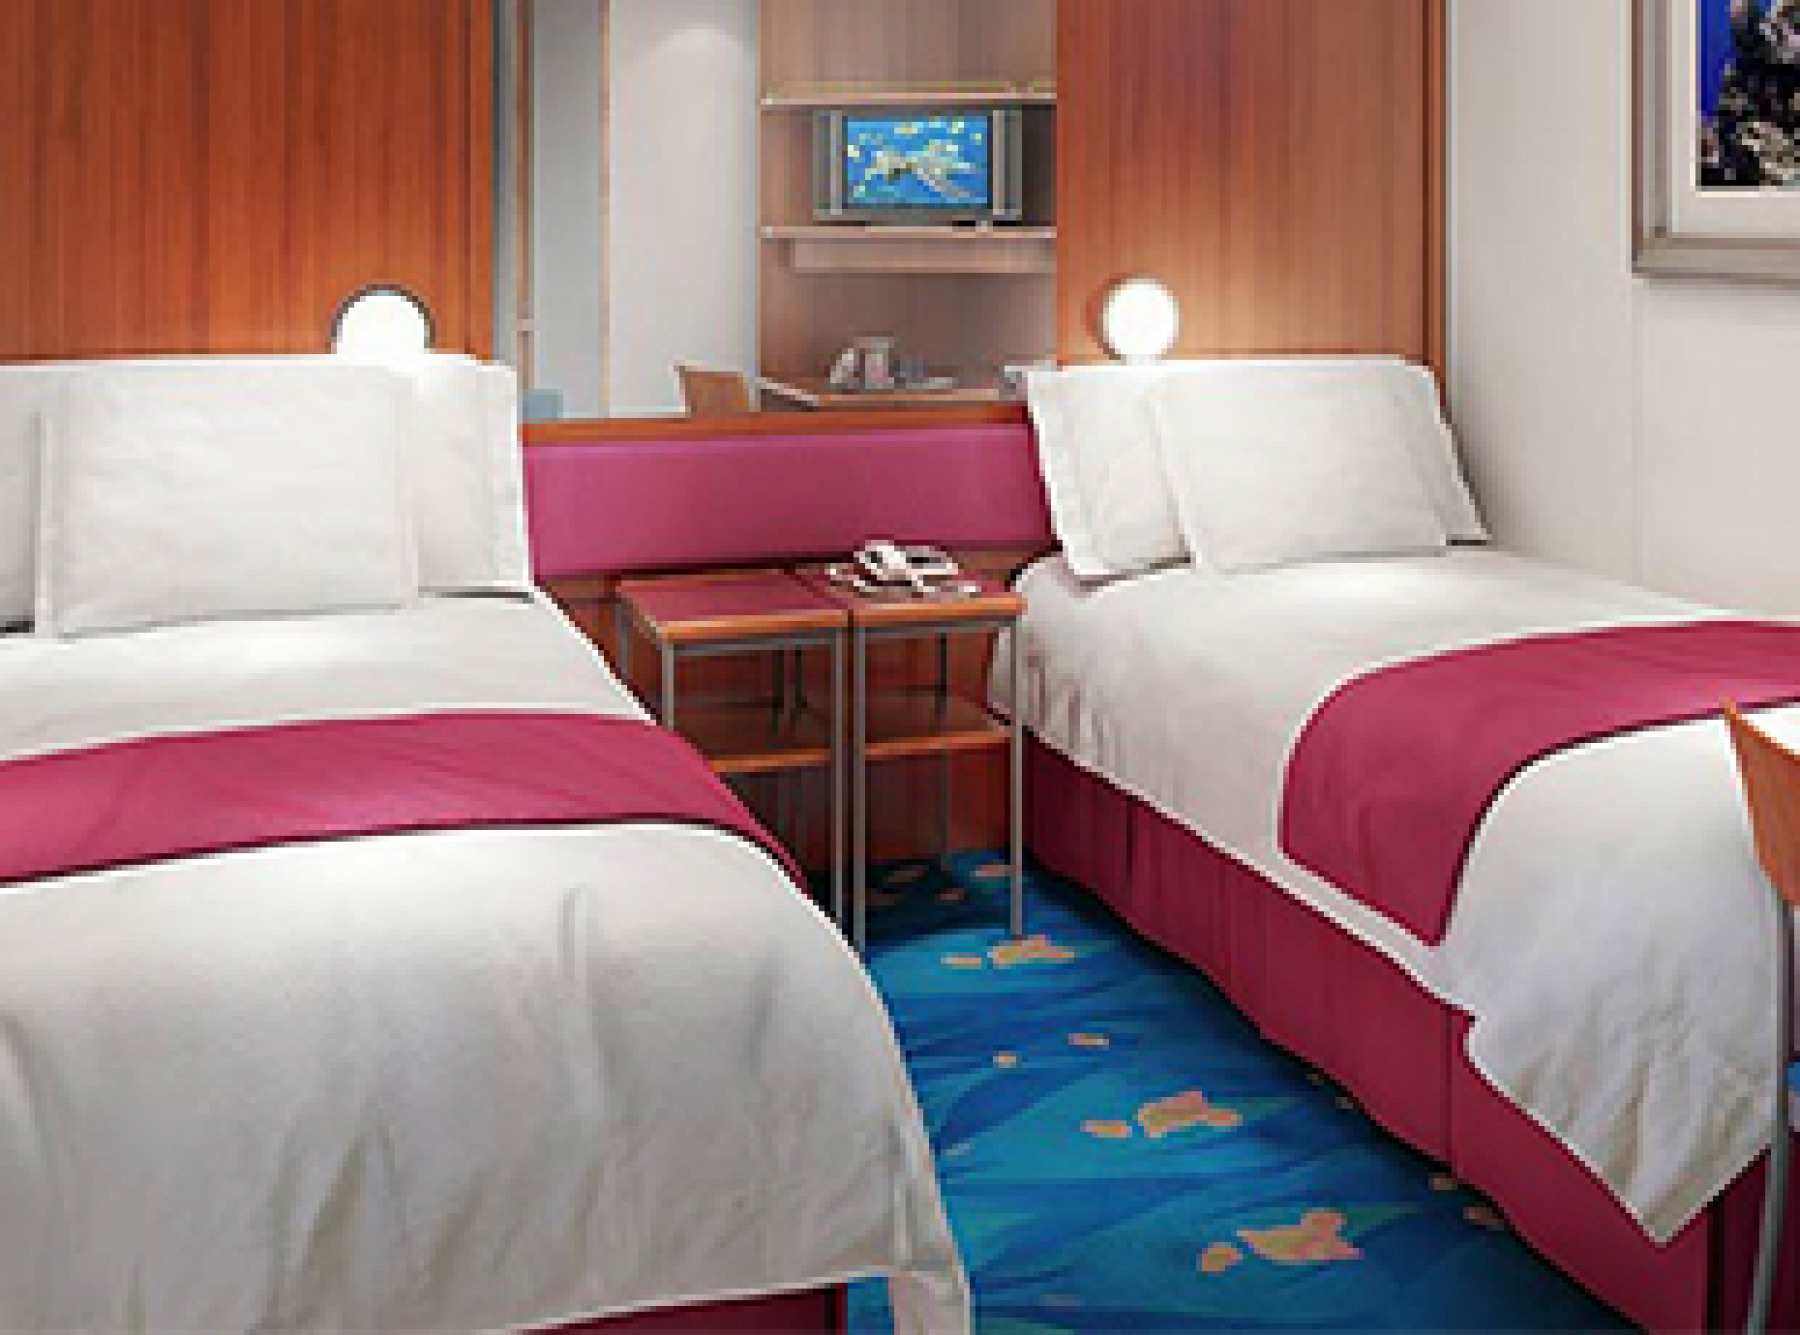 Norwegian Cruise Line Norwegian Jewel Accommodation Inside.jpg